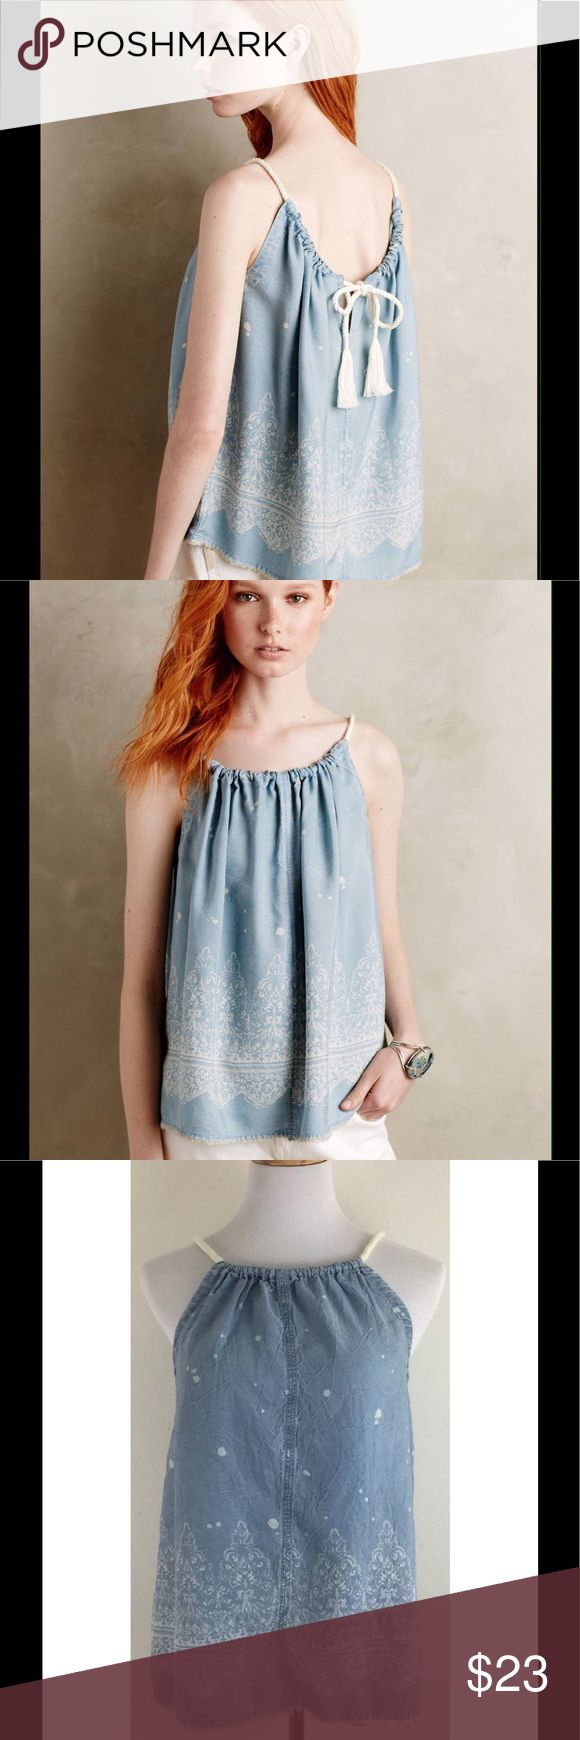 """Anthropologie Holding Horses Chambray Tank Top Anthropologie Holding Horses Amalfi Chambray Tank Top Denim Frayed Hem Sz Small  Super cute tank top with open back top part that can be tied in a knot or bow with the frayed tassel rope tie Front & back of neckline are gathered Intentionally distressed with bleach marks and raw edged frayed hem Excellent, gently used condition - no flaws noted Approximate measurements (please check measurements to insure a proper fit): Chest 19"""" across, laid…"""